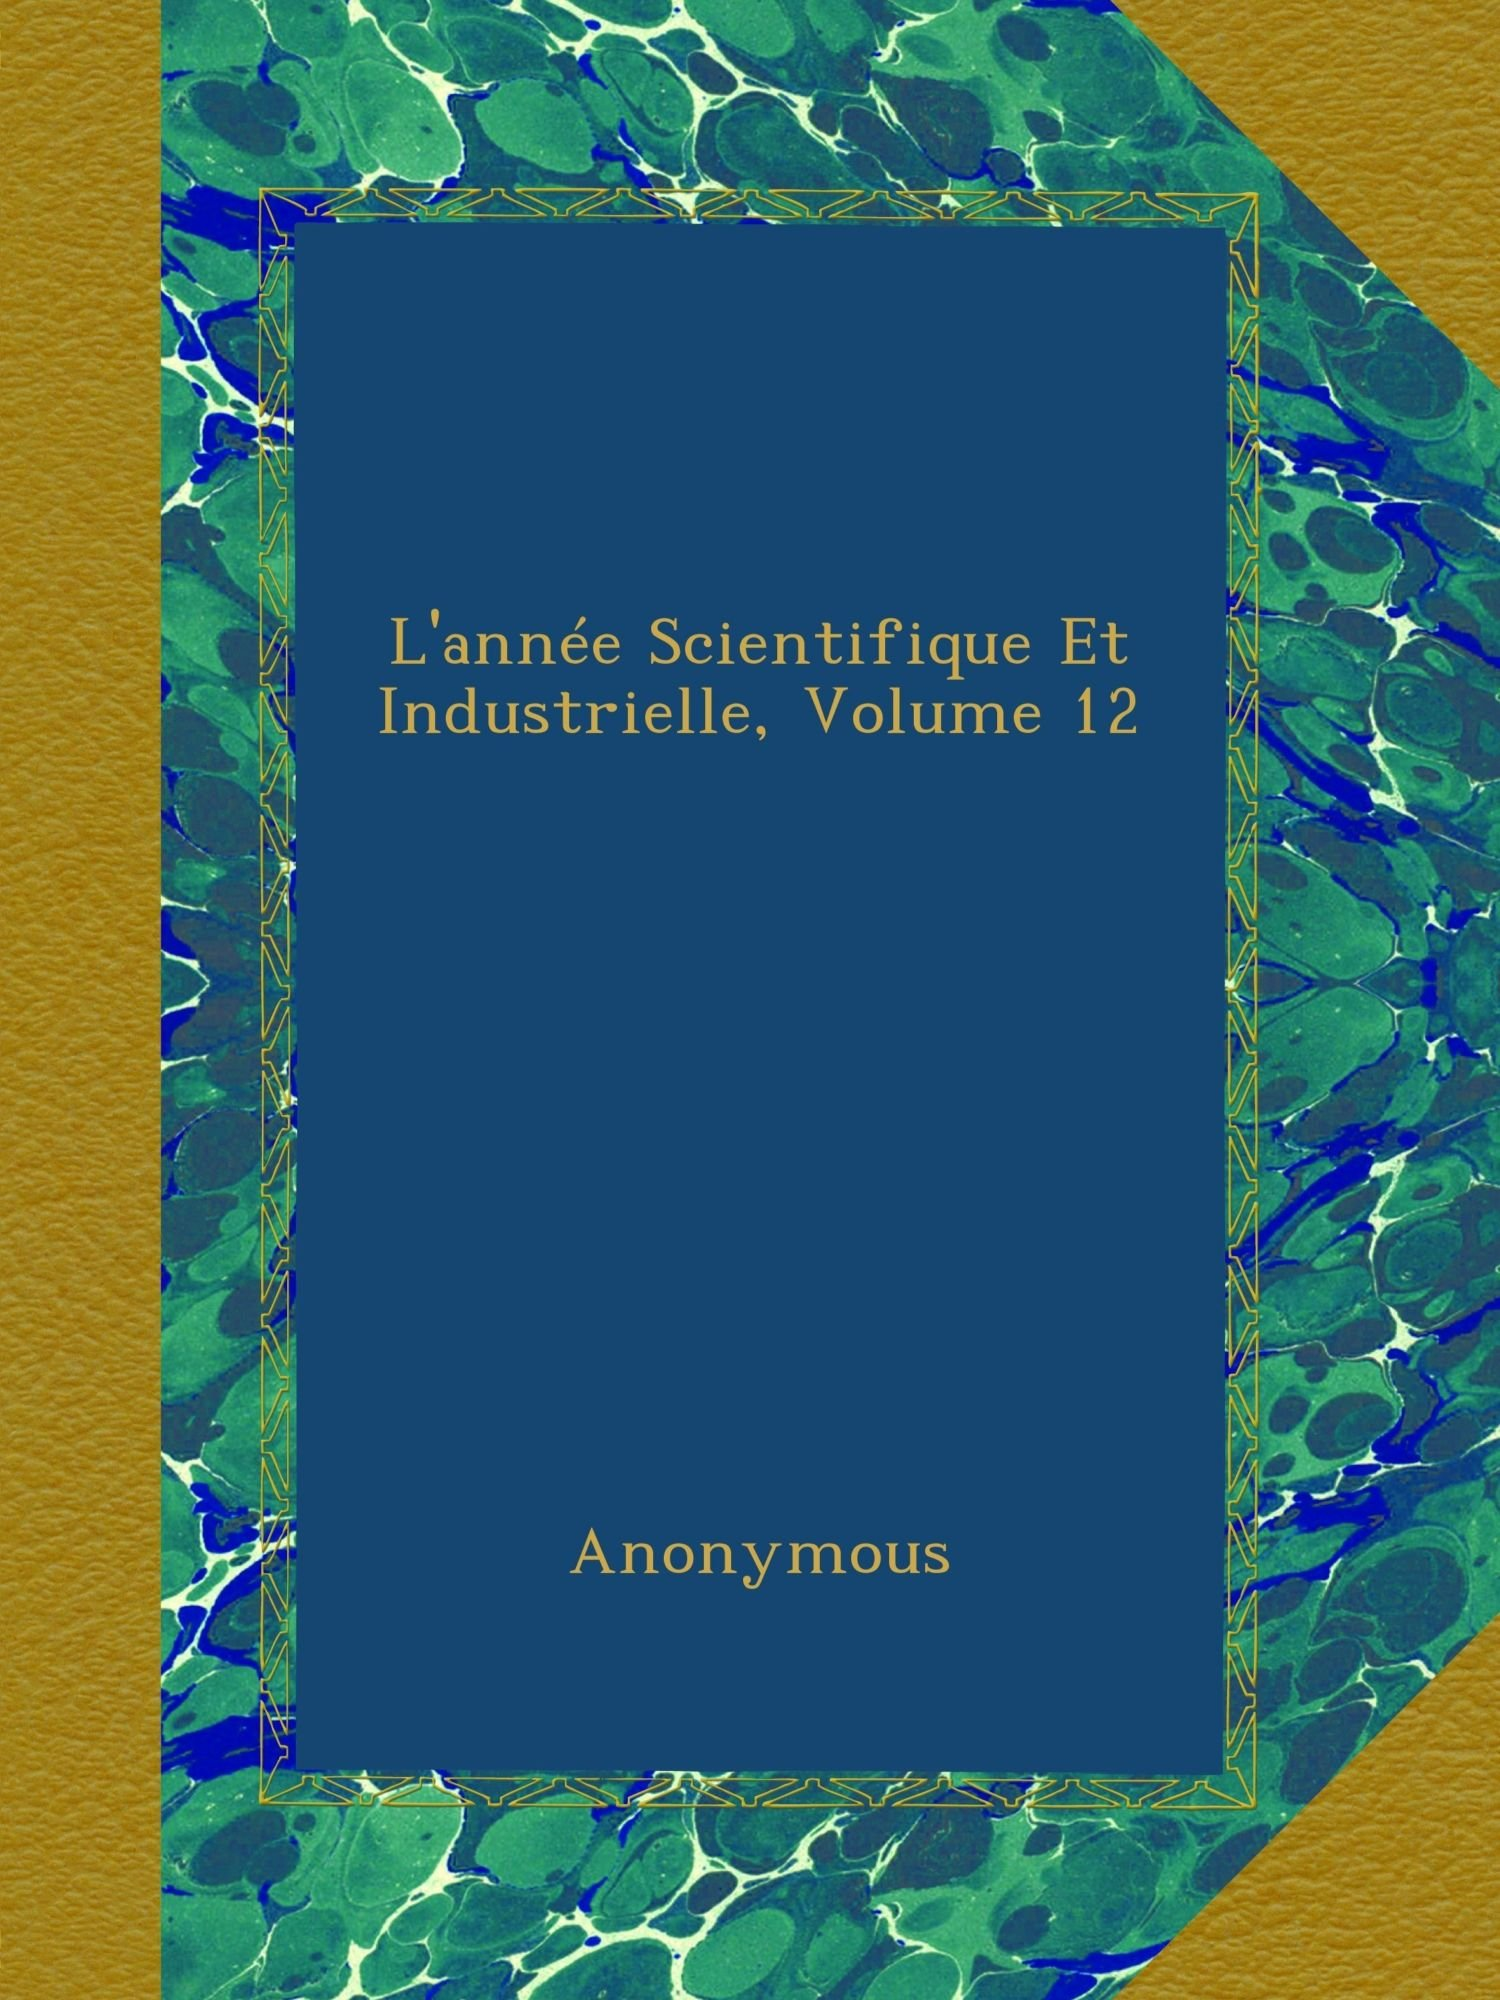 L'année Scientifique Et Industrielle, Volume 12 (French Edition) pdf